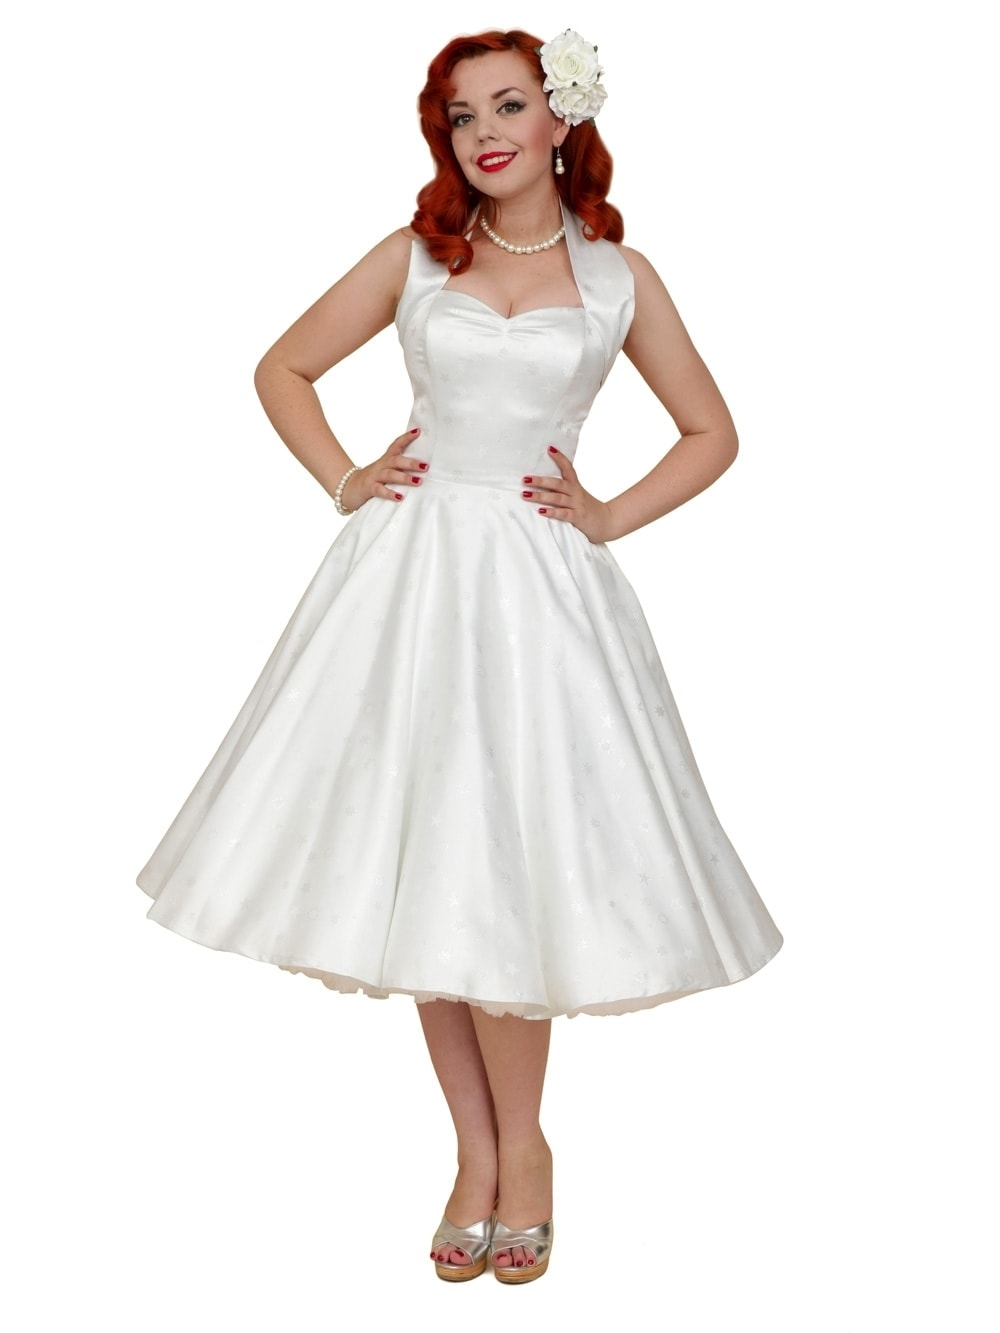 6c7b0403c58 1950s Halterneck White Star Satin Dress from Vivien of Holloway